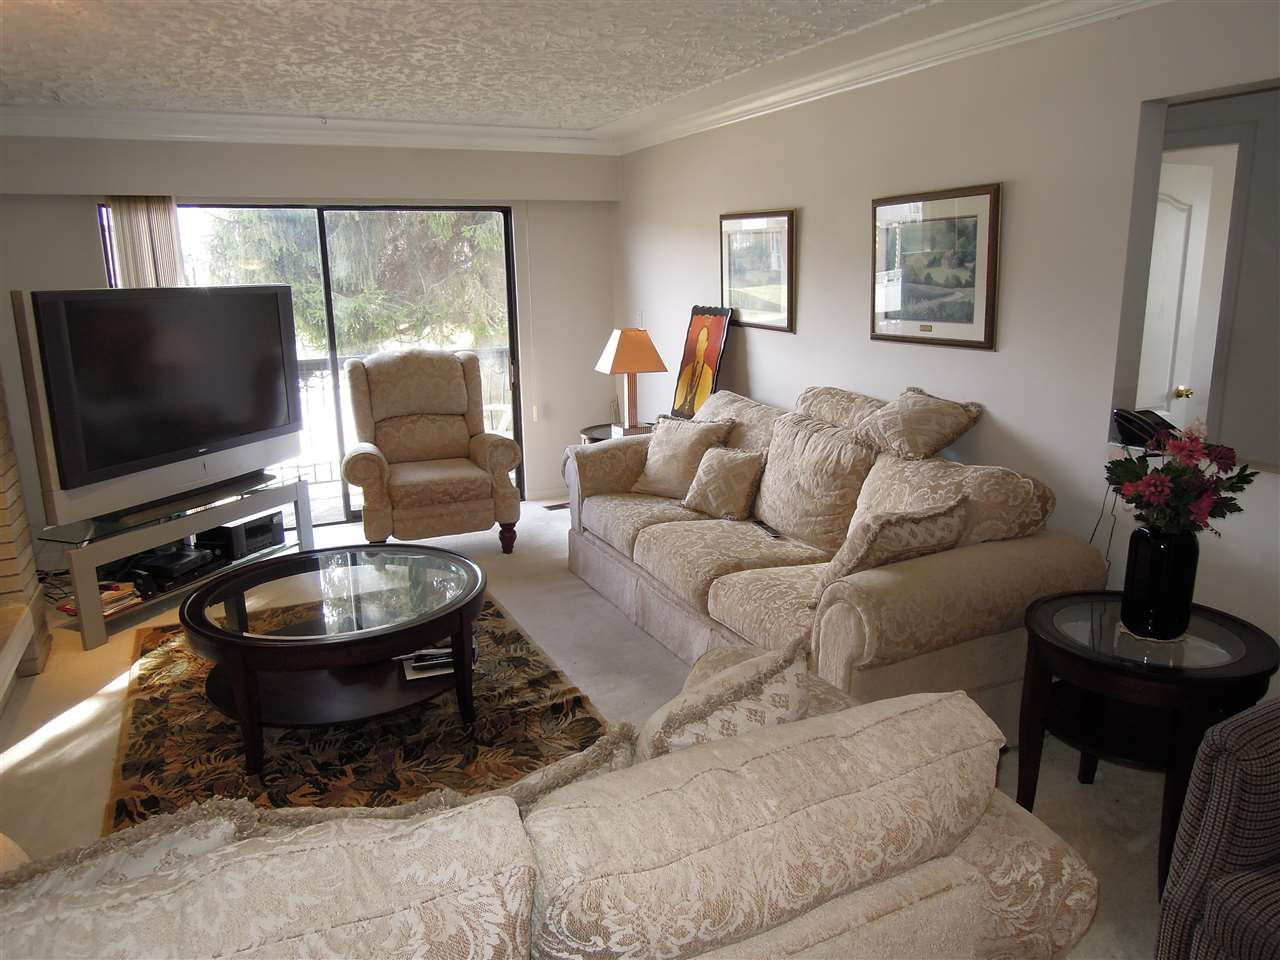 Photo 8: Photos: 3080 ROYAL OAK AVENUE in Burnaby: Central BN House 1/2 Duplex for sale (Burnaby North)  : MLS®# R2143810